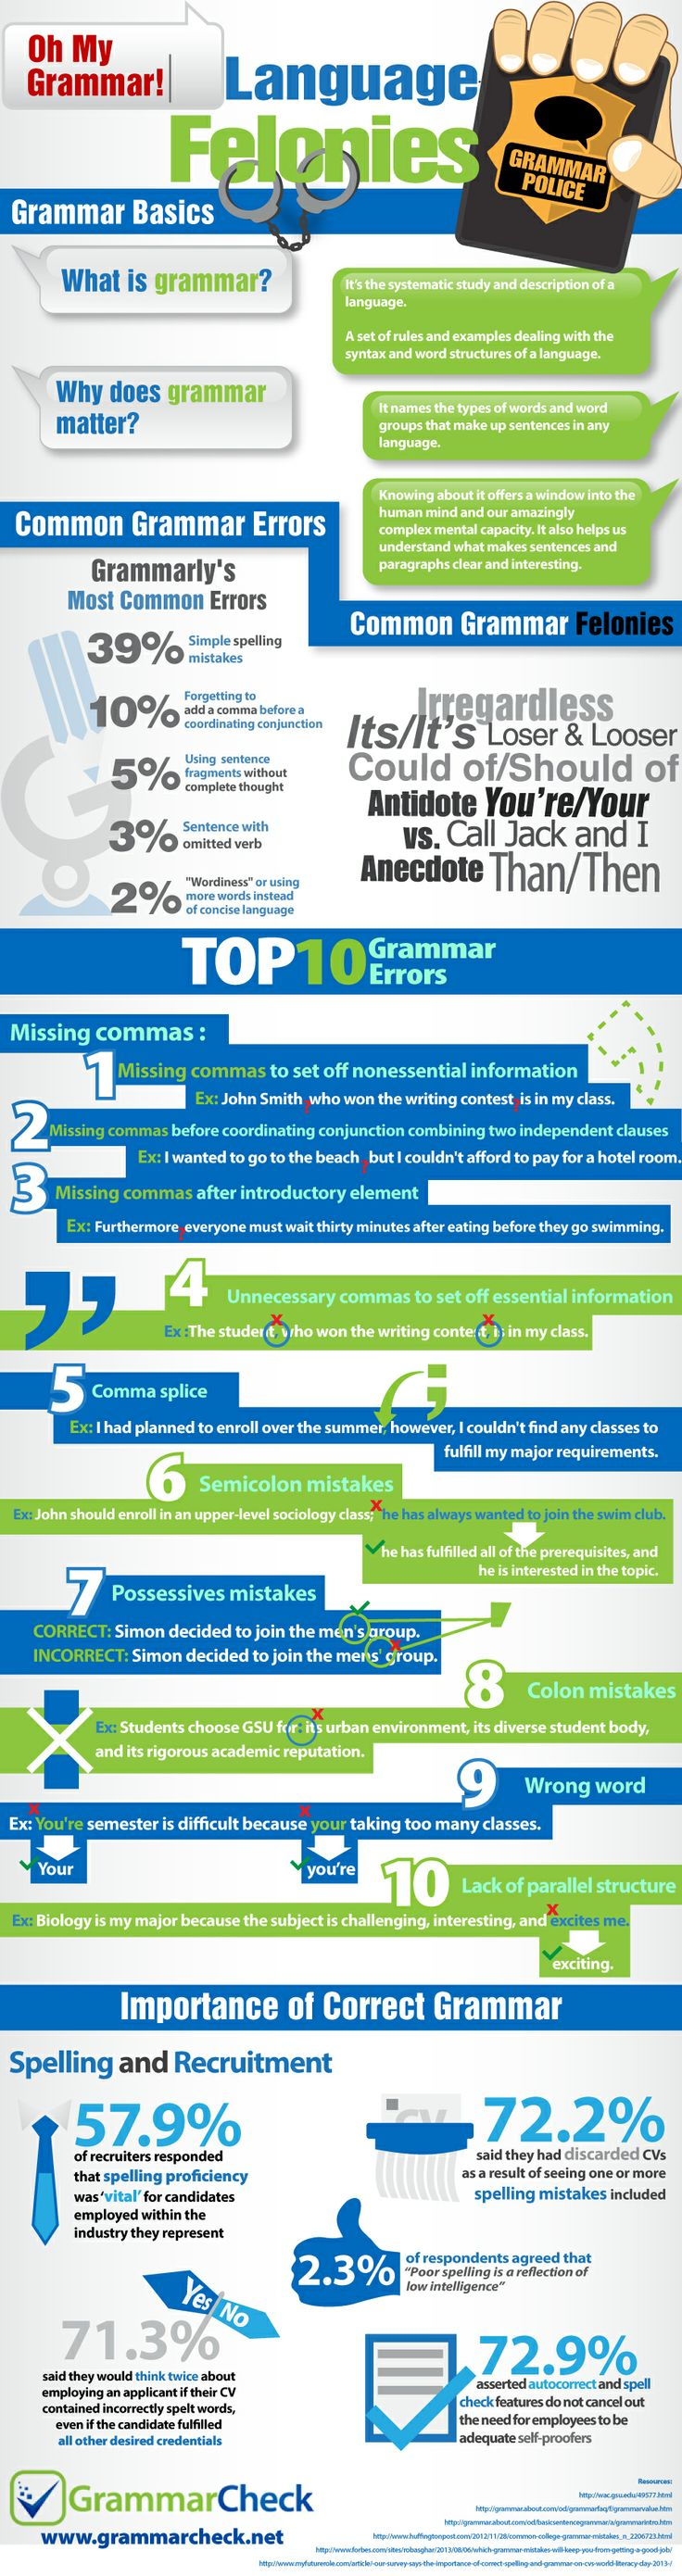 Oh My Grammar Language Felonies Top 10 Grammar Errors Common Mistakes And The Importance Of Correct Grammar Infographic What Is Grammar Common Grammar Mistakes Grammar